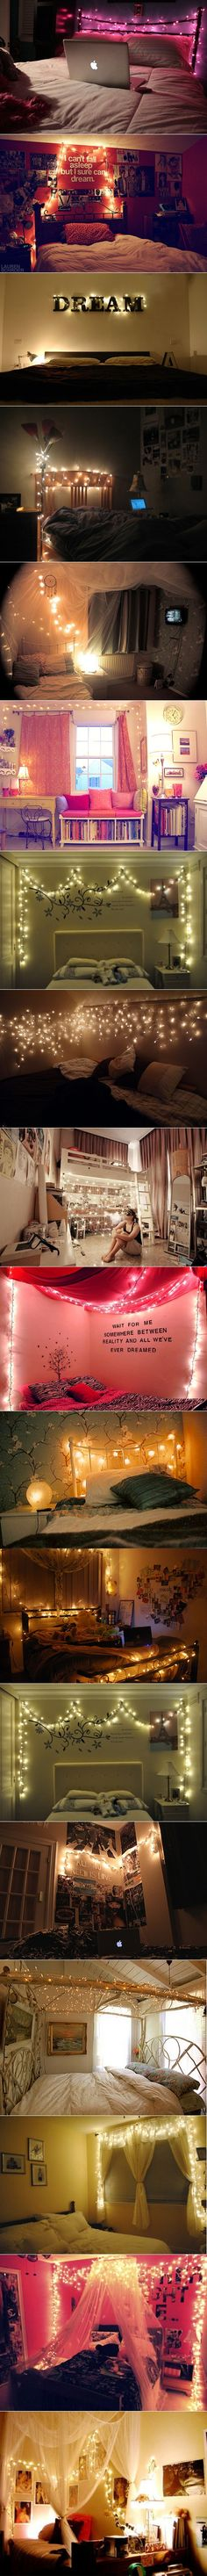 I would love to put lights up around my bed!!